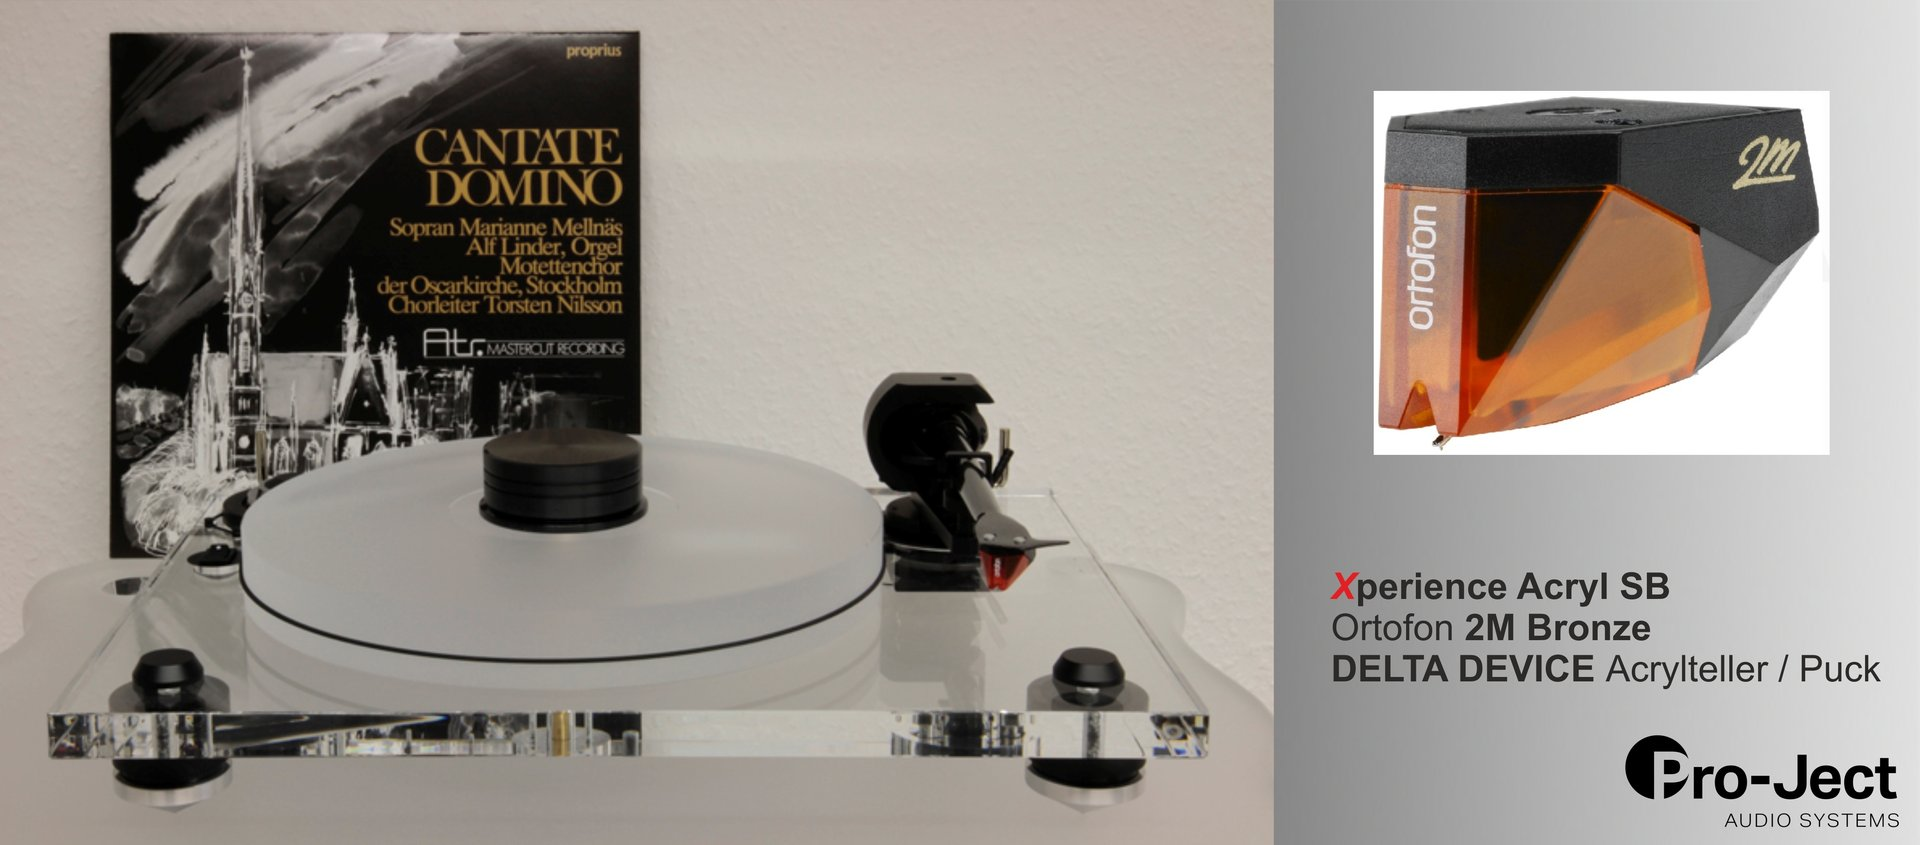 PRO-JECT Xperience SB ACRYL DeltaDevice Bronze Edition Upgrade